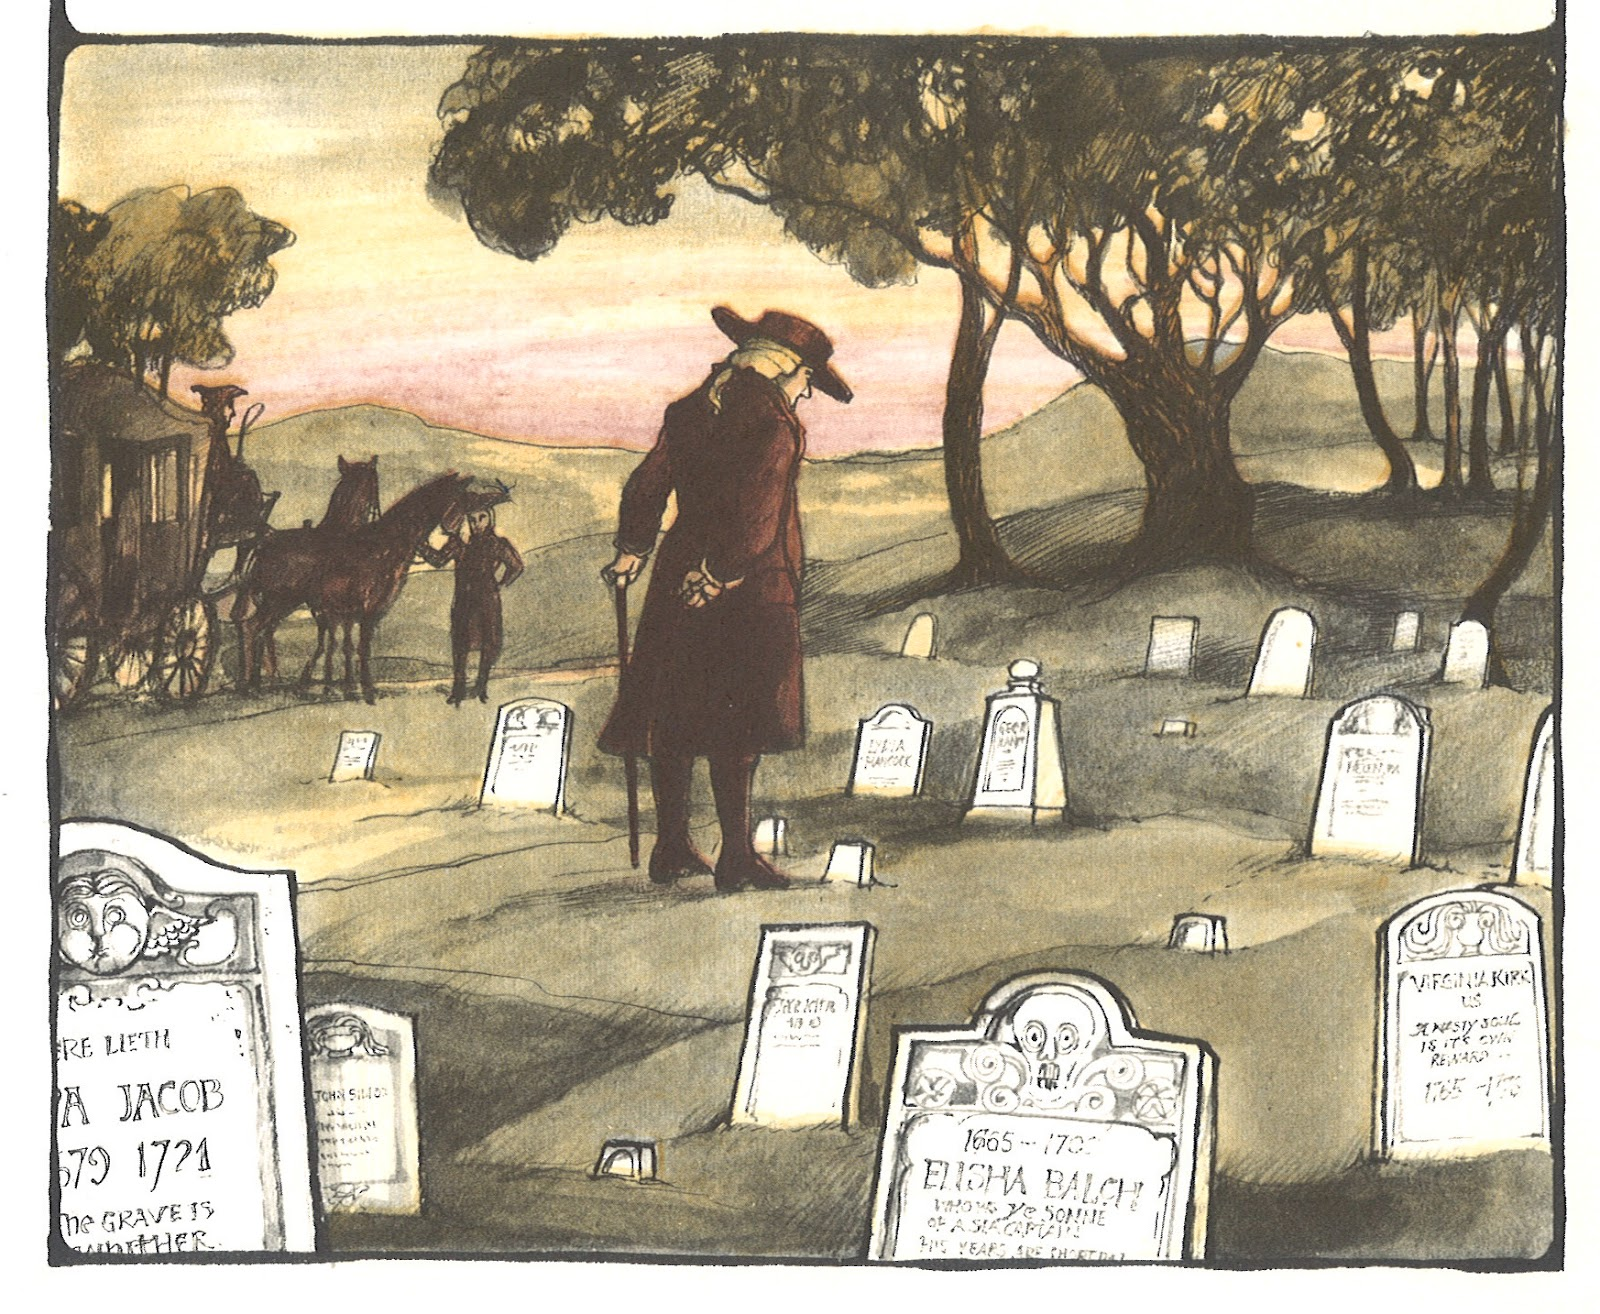 Kirkus-tombstone-with-writing.jpg